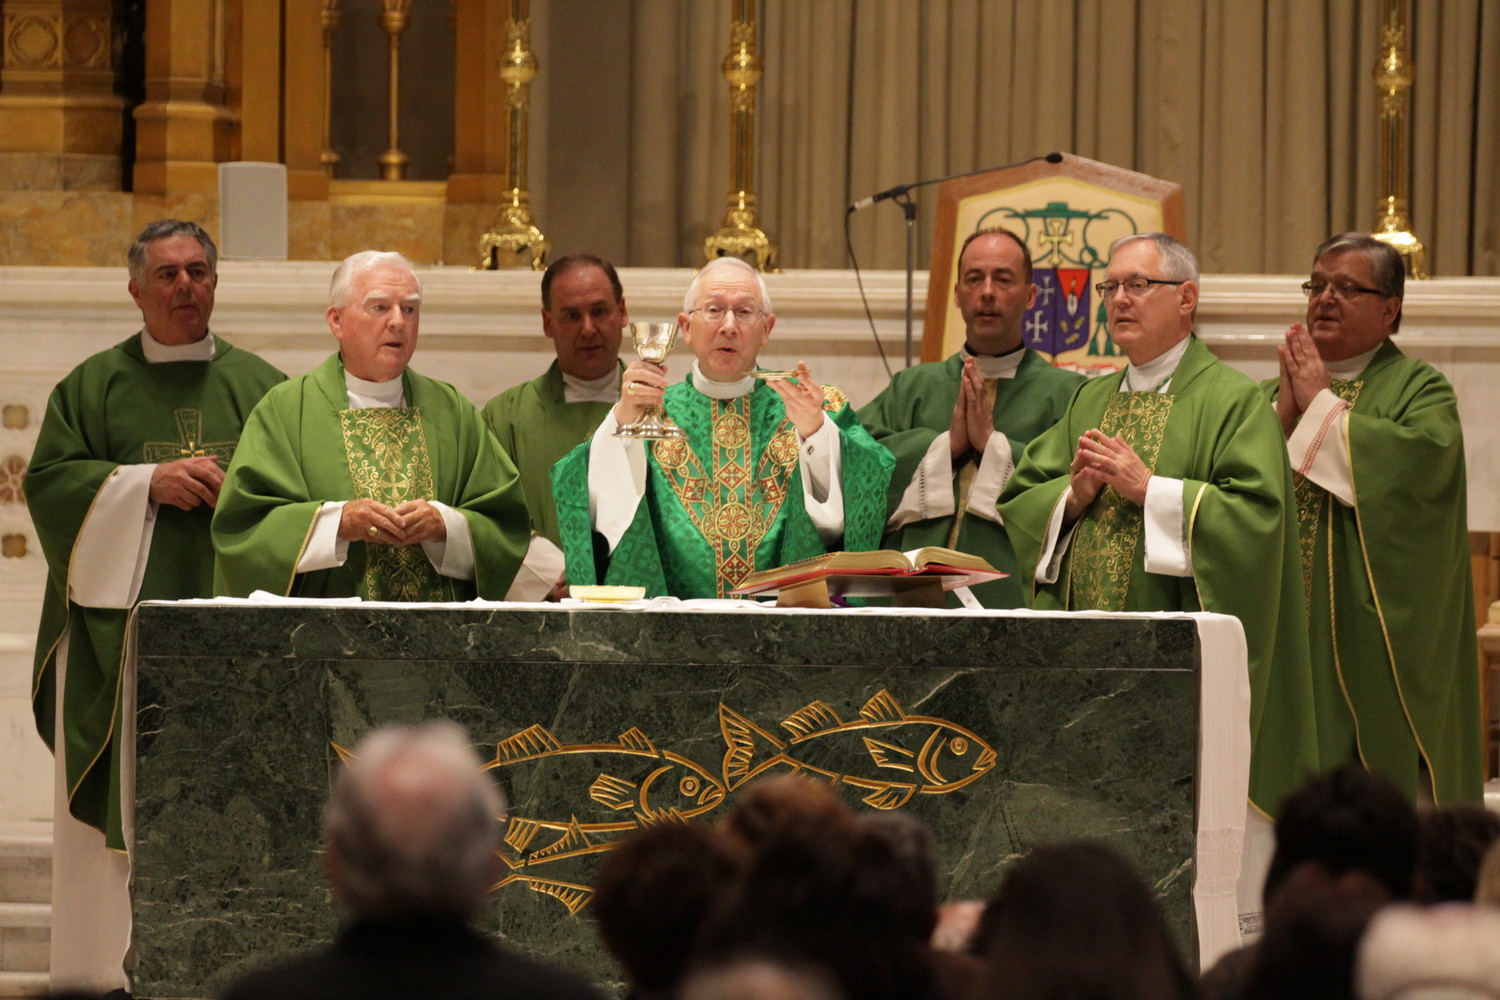 Archbishop Leonard Paul Blair serves as the main celebrant at the noon Mass at the Cathedral of SS. Peter and Paul in this May 17, 2016 file photo. Pictured from left, Father Jonathan DeFelice, O.S.B., then-assistant moderator of the curia and vice chancellor; Bishop Emeritus Robert E. Mulvee; Msgr. Albert A. Kenney, vicar general and moderator of the curia; Archbishop Blair; Father Timothy D. Reilly, diocesan chancellor; Bishop Thomas J. Tobin; and Msgr. Anthony Mancini, rector of the Cathedral of SS. Peter and Paul.